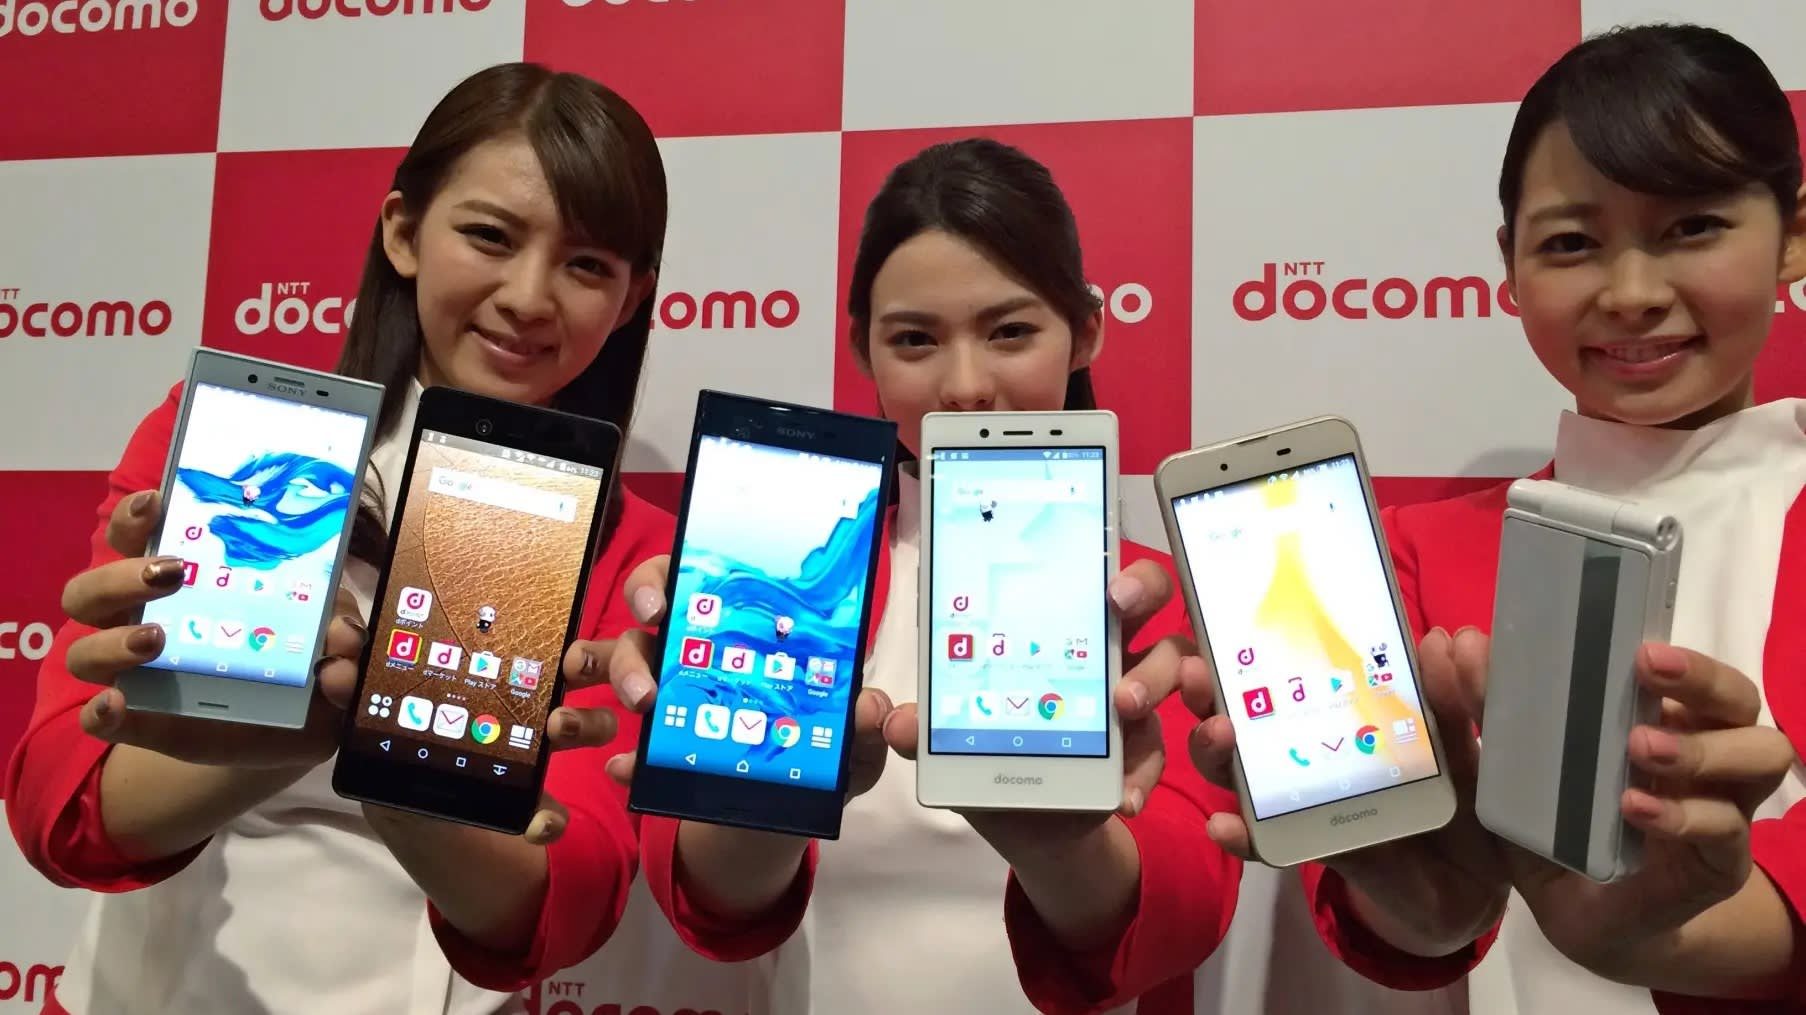 Docomo to slash phone rates up to 40% from June - Nikkei Asian Review